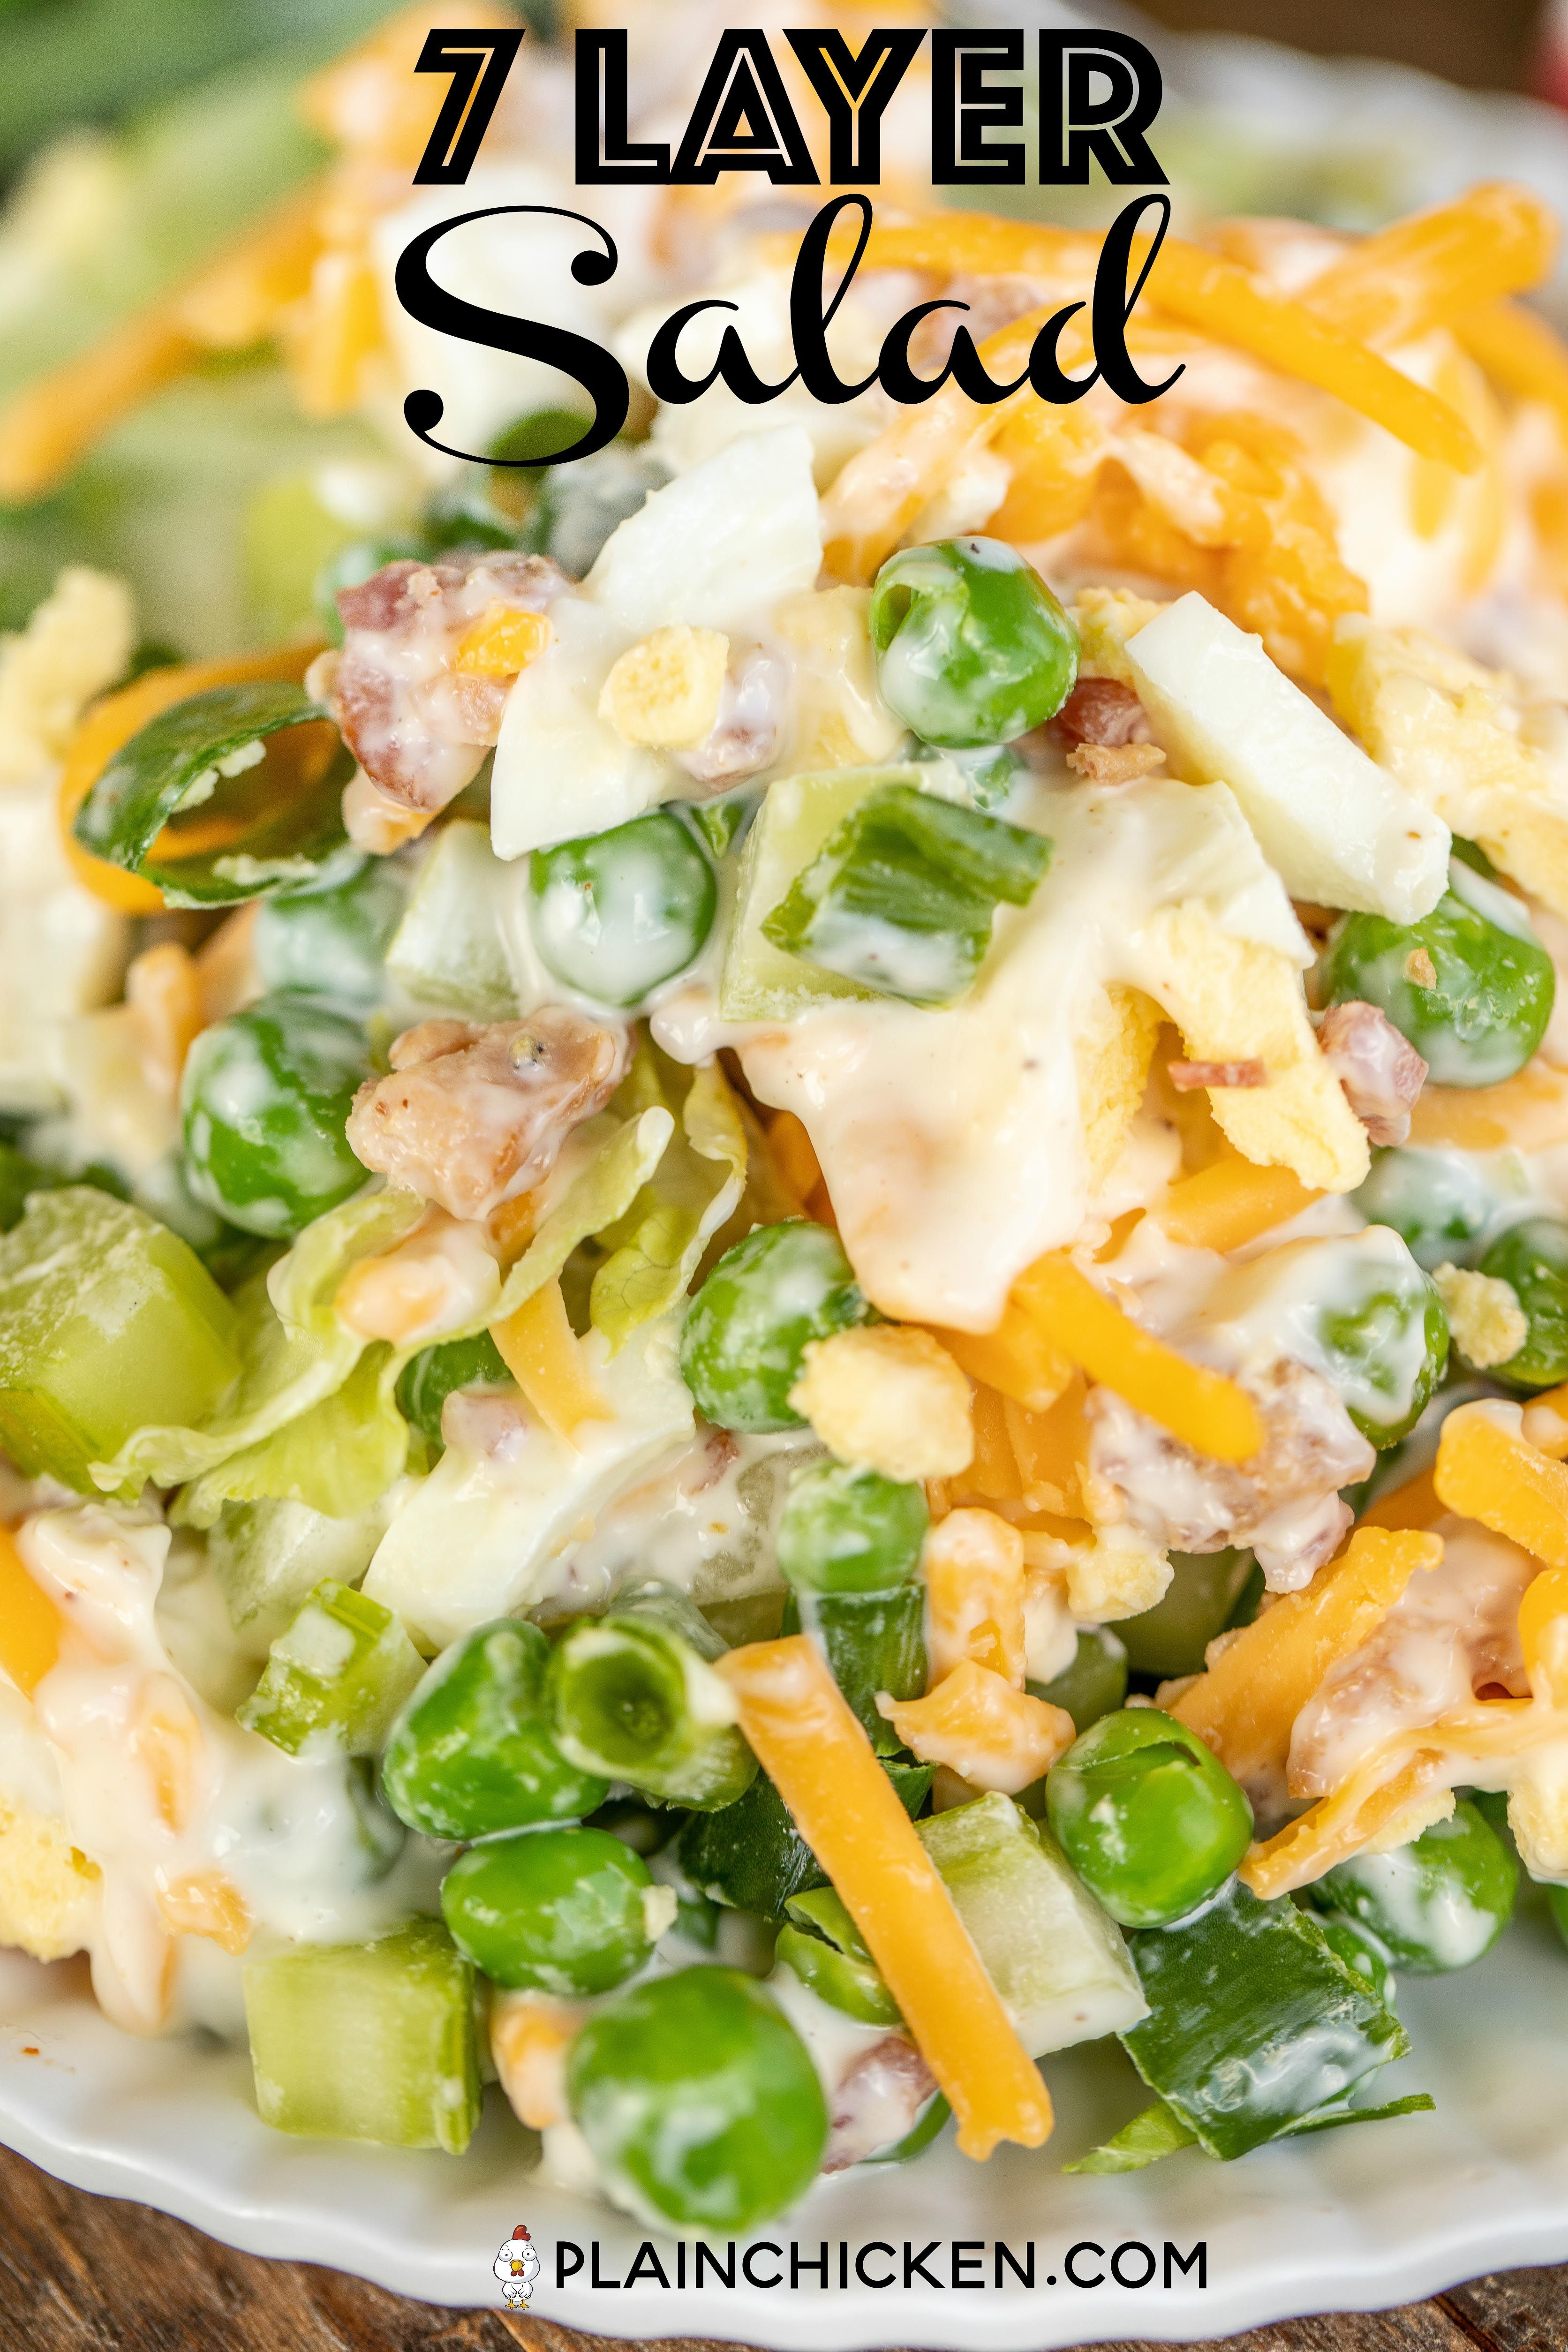 7 Layer Salad Recipe A Classic Recipe Layers Of Lettuce Green Onions Celery Green Peas Hard Boiled Egg Layered Salad Recipes Layered Salad 7 Layer Salad